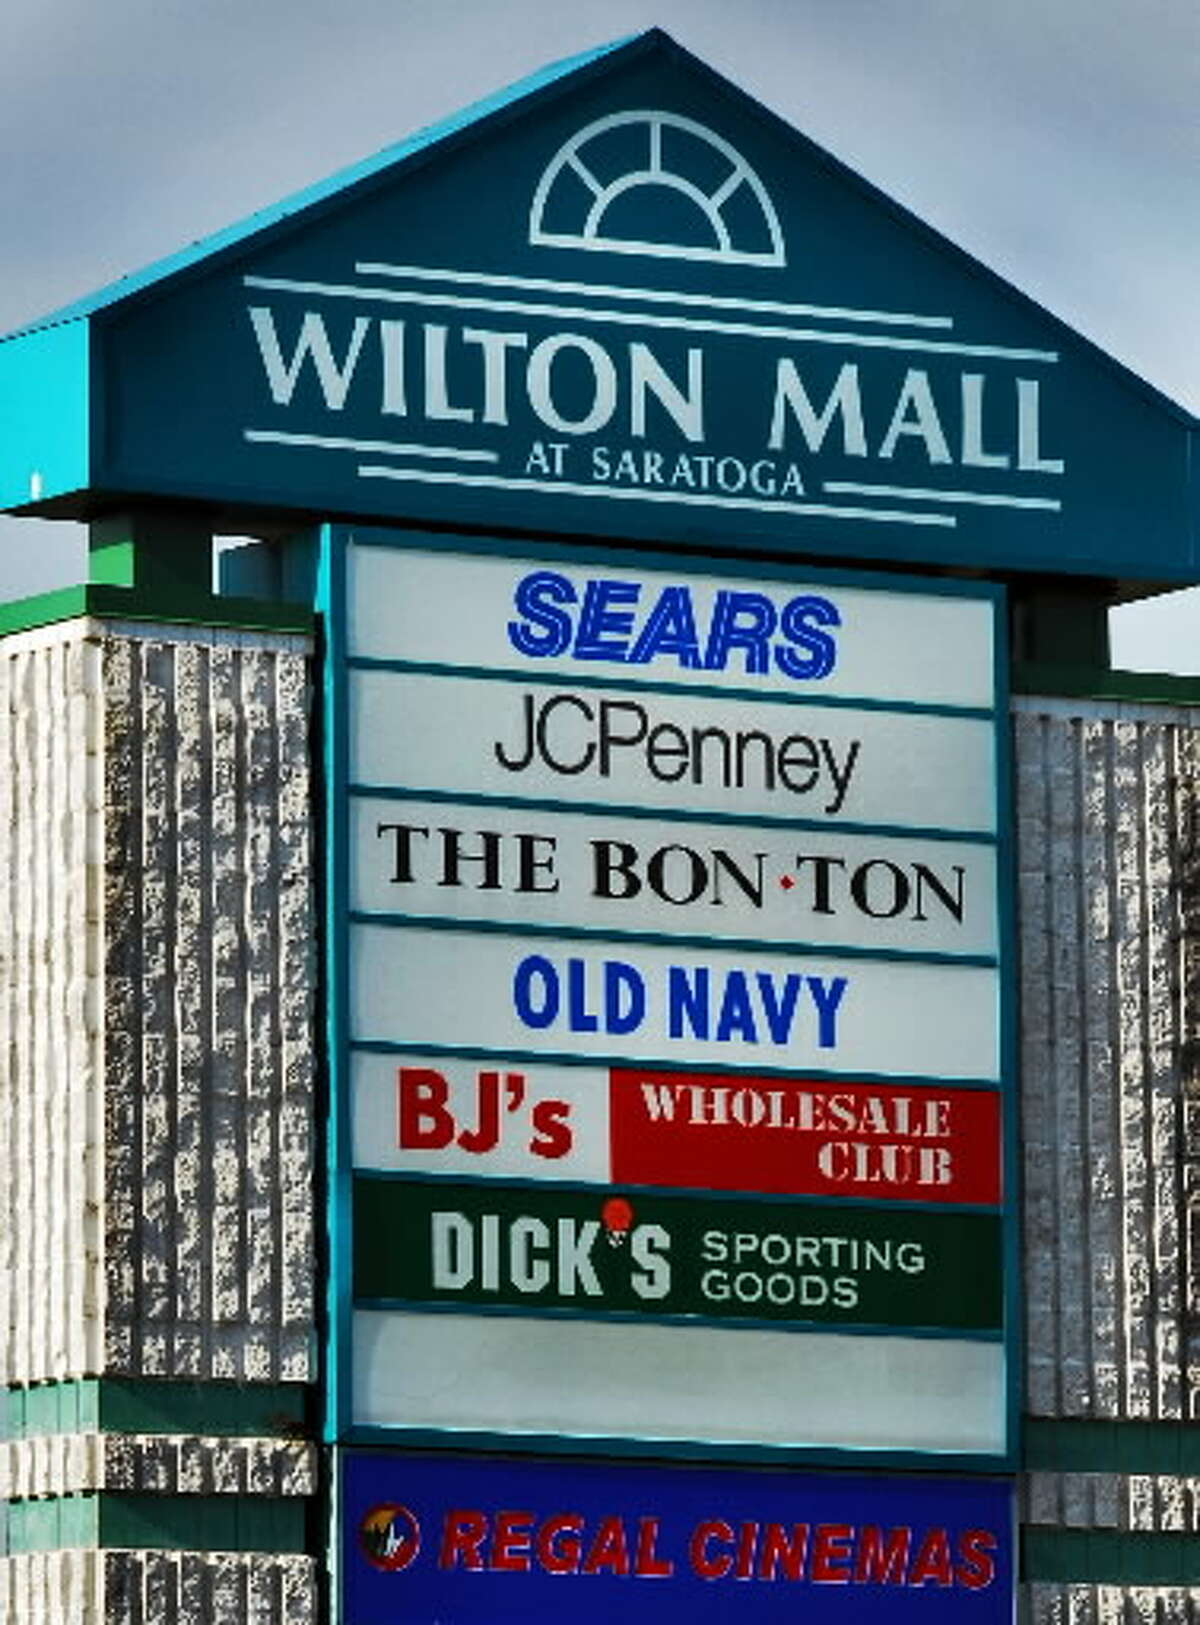 Wilton Mall in Saratoga.